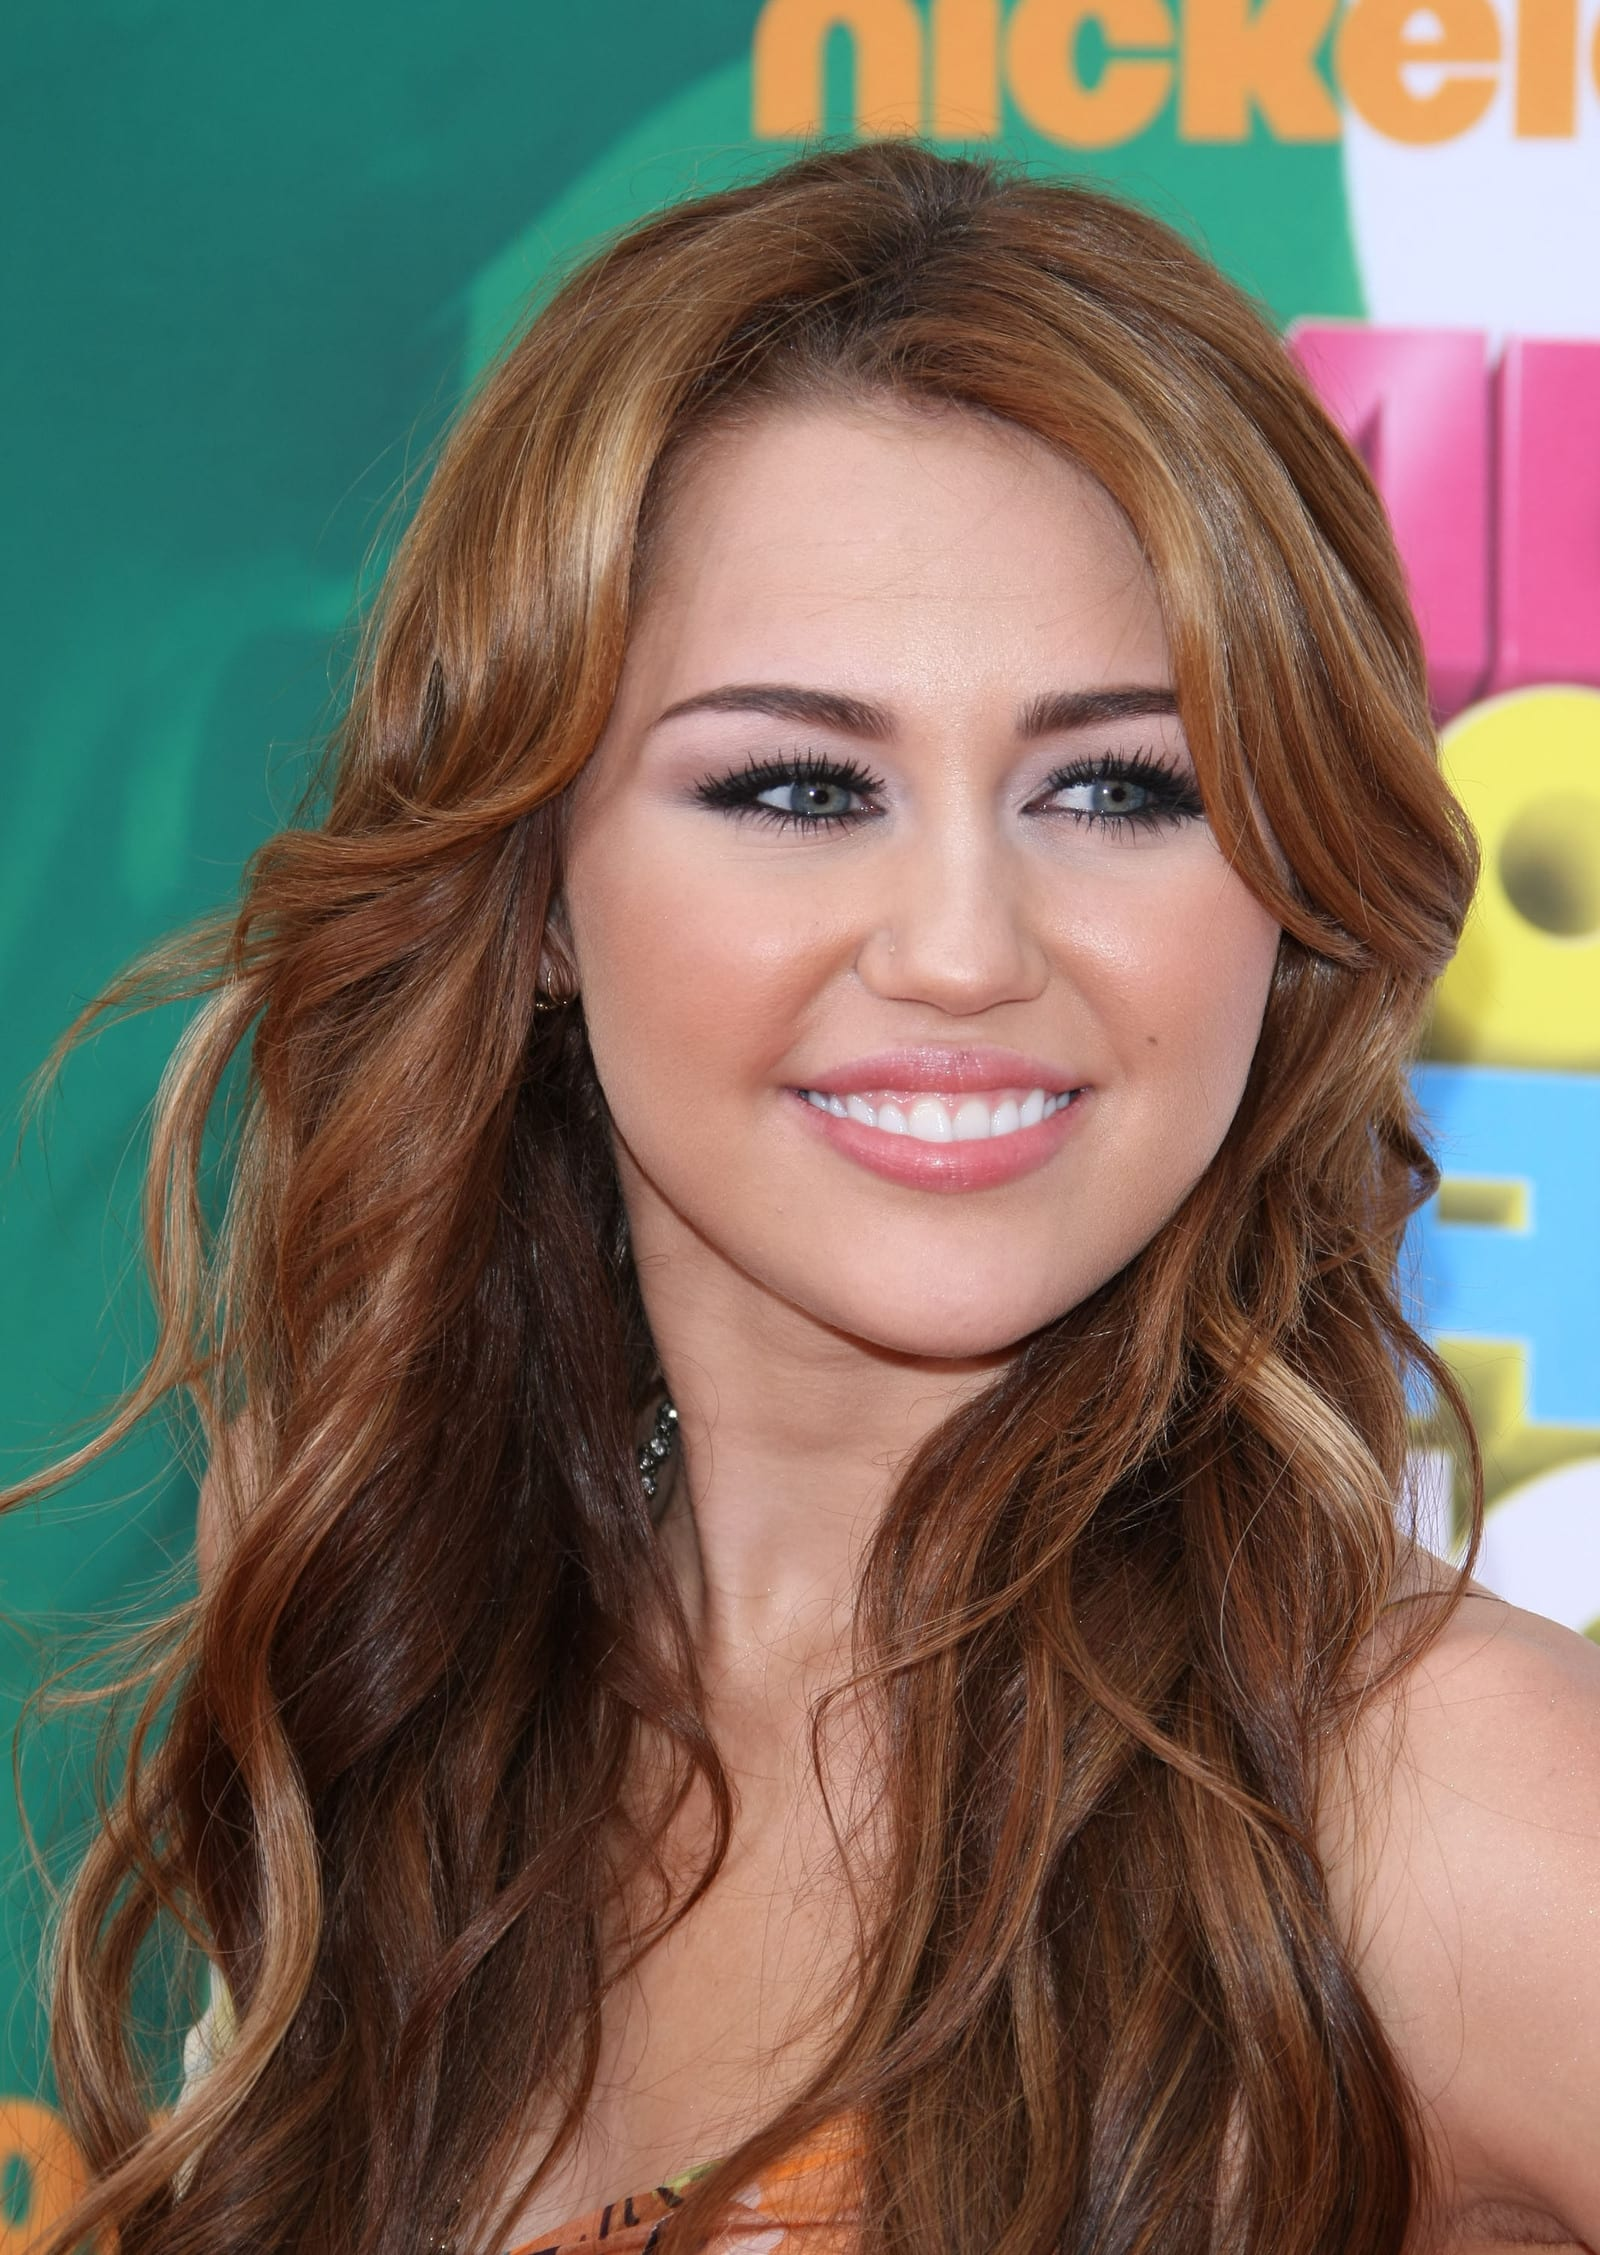 Miley Cyrus Lashes Out At Critics Tweets Disturbing Photo The